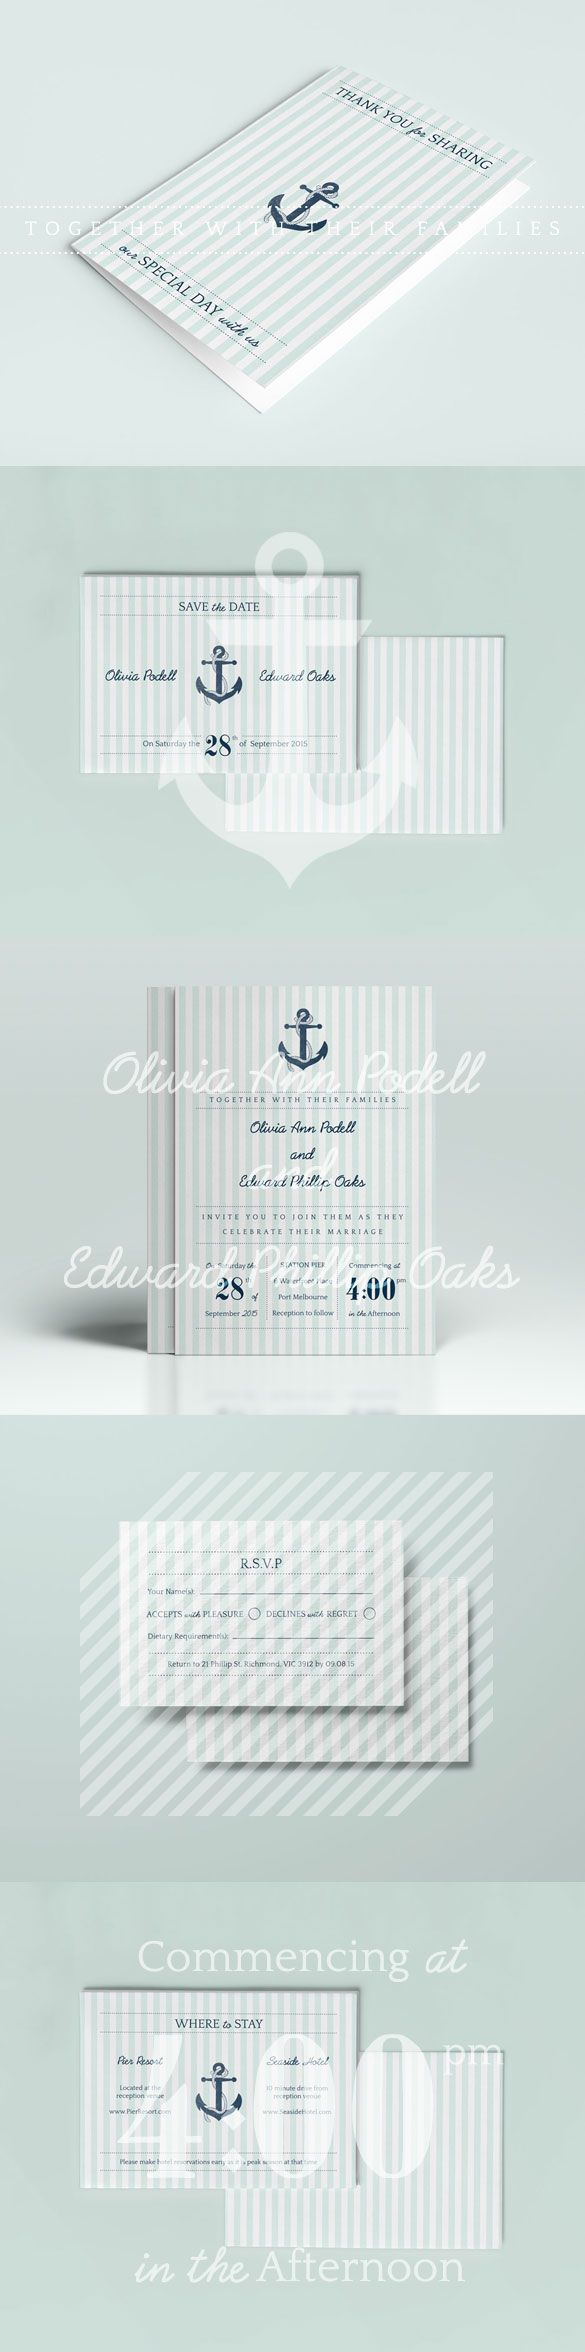 DIY Printable Wedding Invitation and Stationery Set Kit Nautical Anchor Yacht Boat Stripes Navy Blue Preppy Available for purchase: https://www.etsy.com/au/listing/183300232/diy-printable-wedding-invitation-and?ref=shop_home_active_1